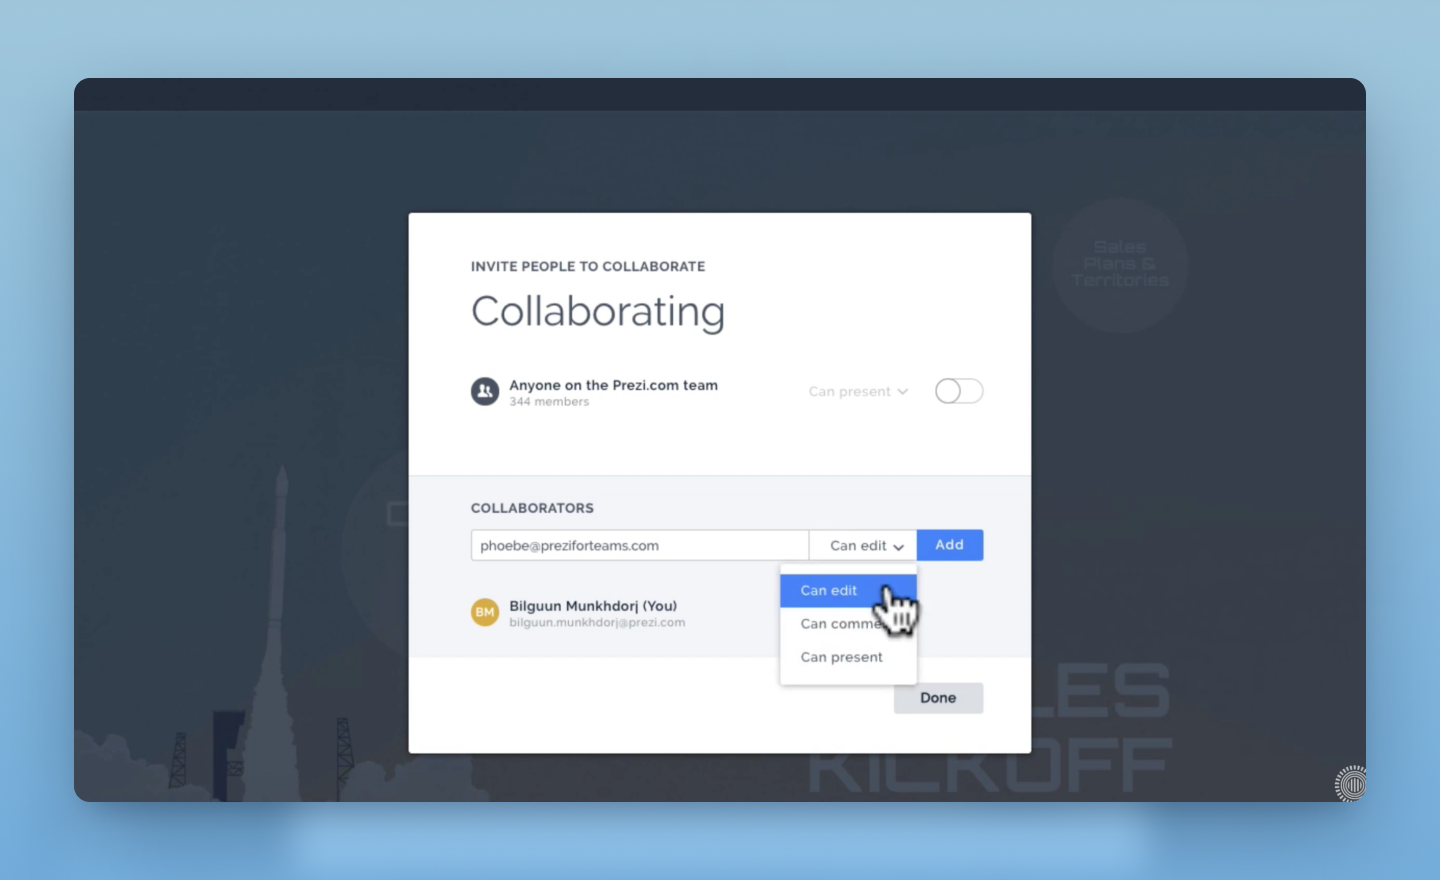 collaborate in Prezi